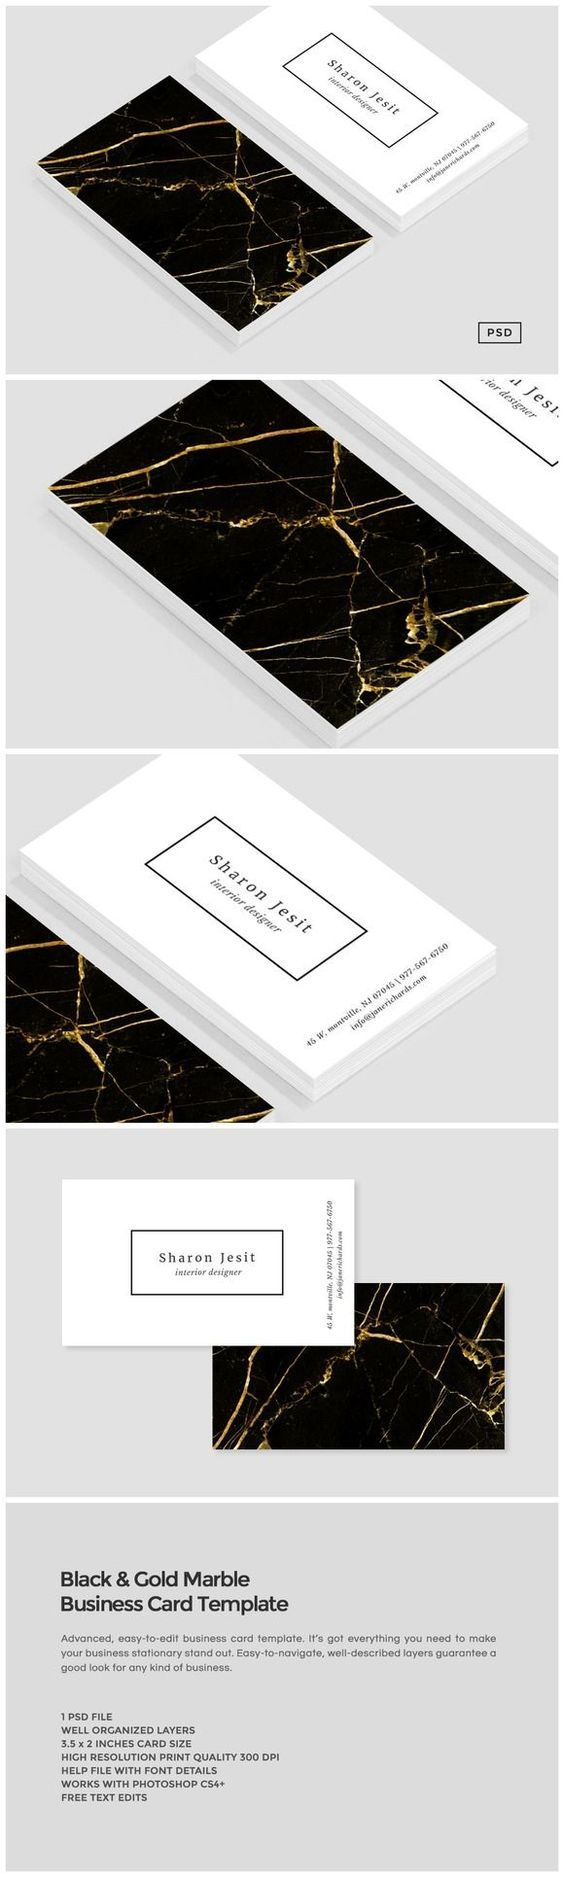 Black Gold Marble Business Card By Design Co On Creative Market